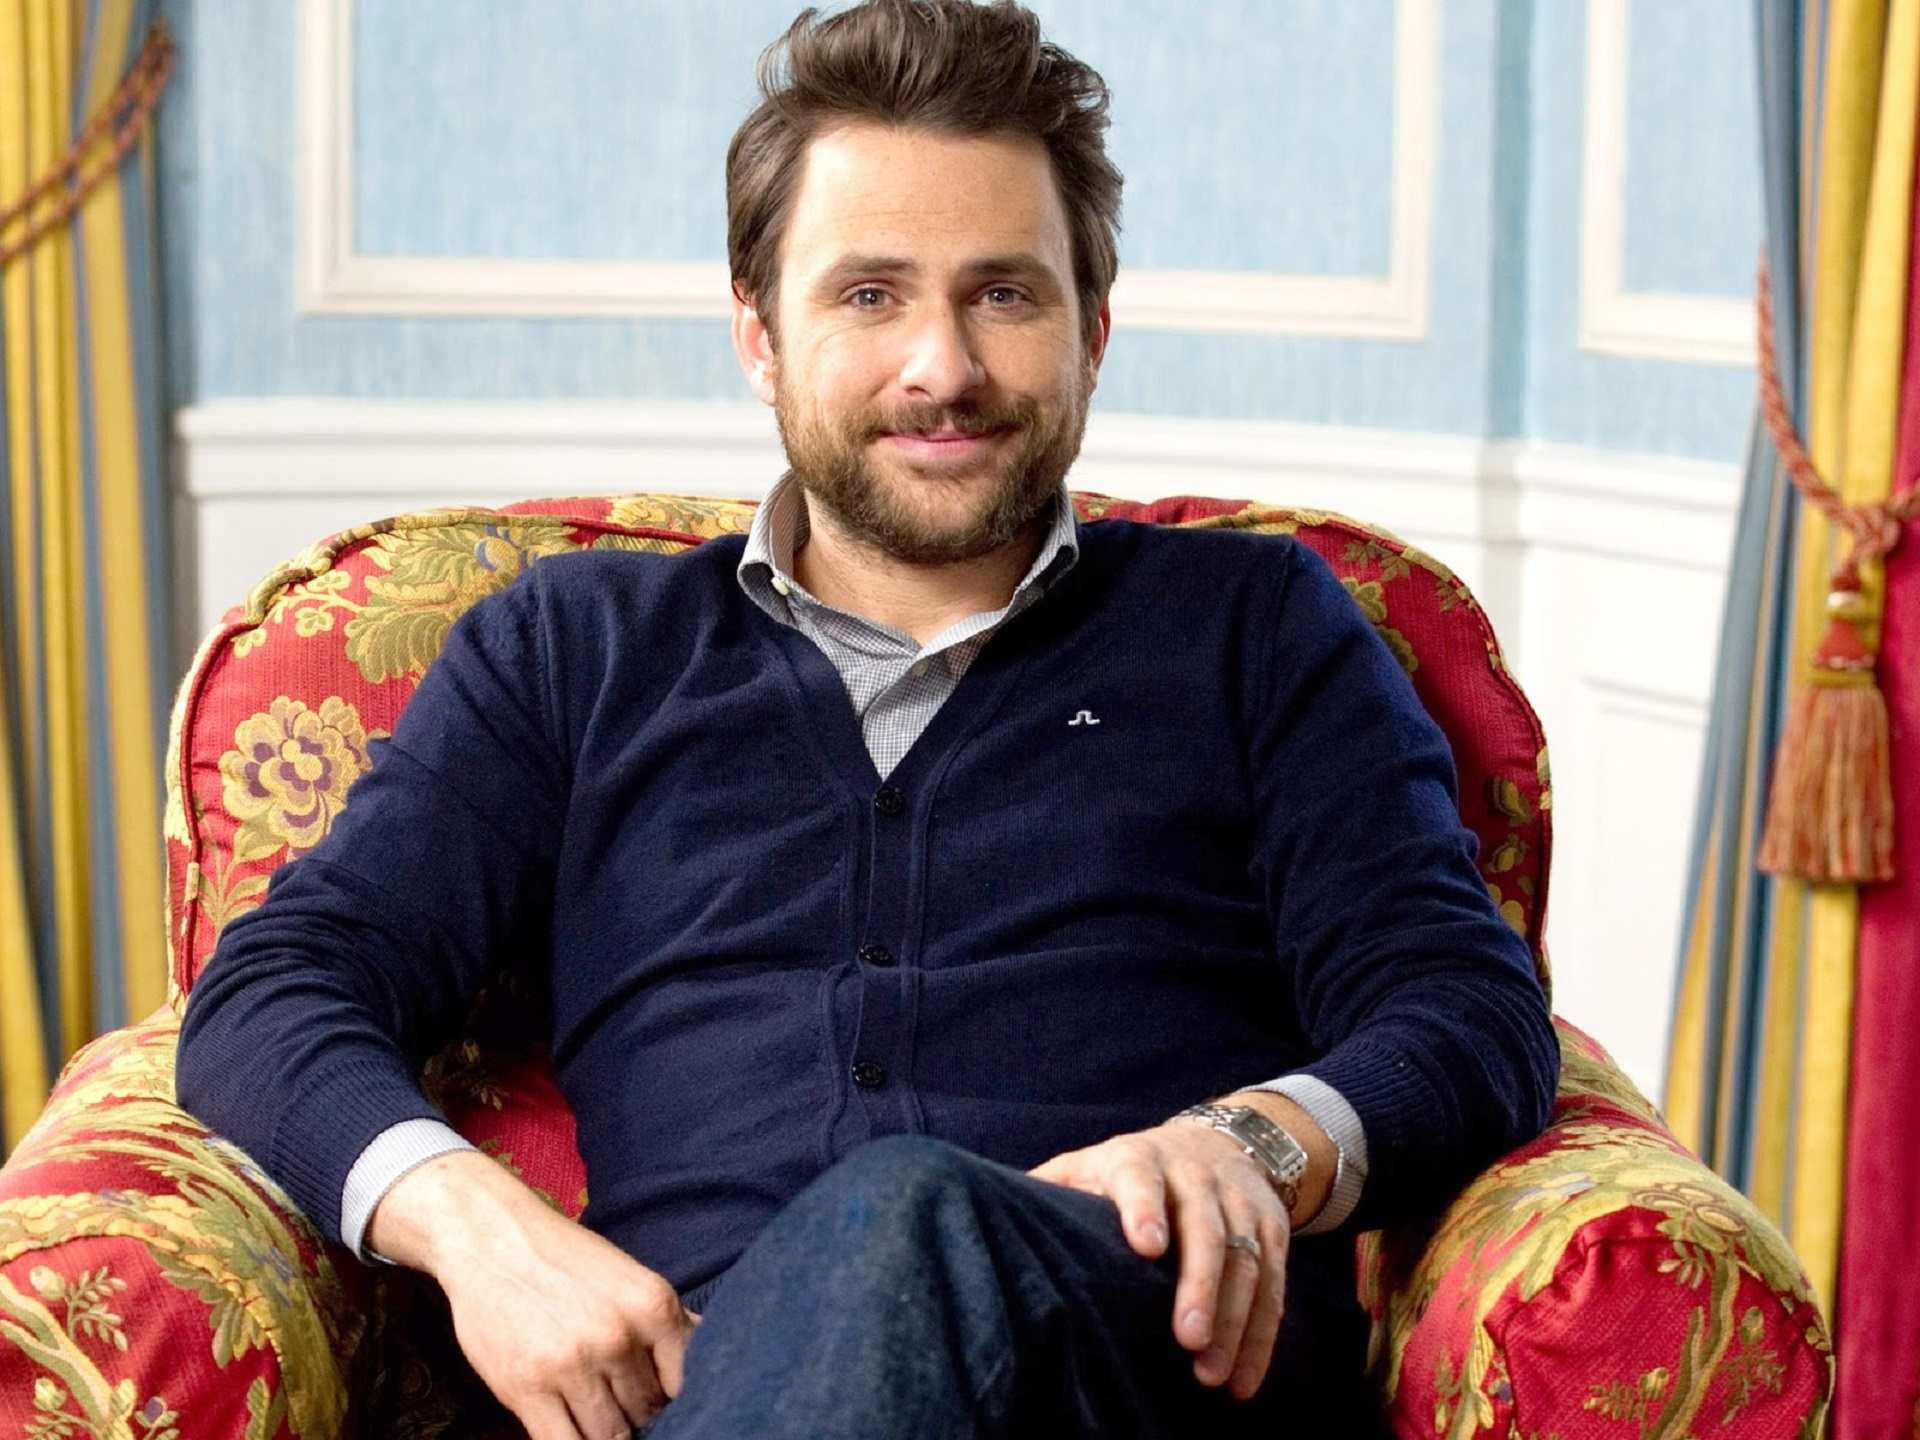 Charlie Day Computer Wallpaper